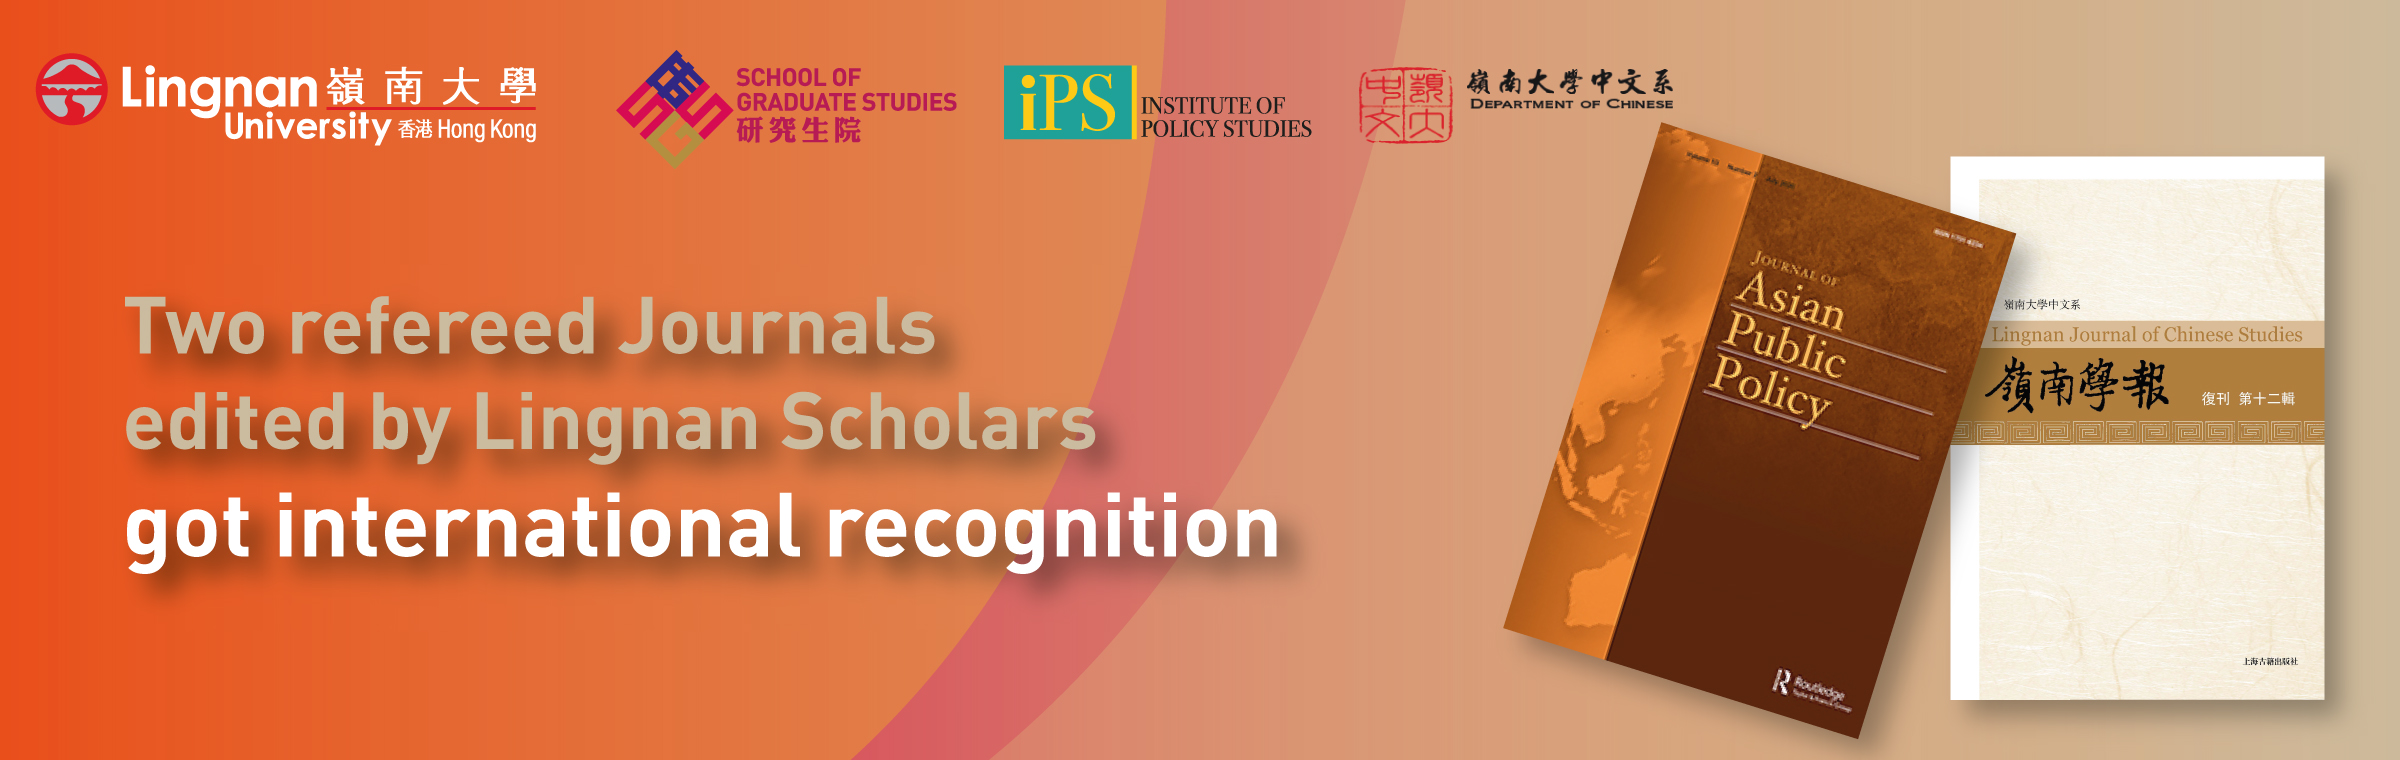 Two refereed Journals edited by Lingnan Scholars got international recognition